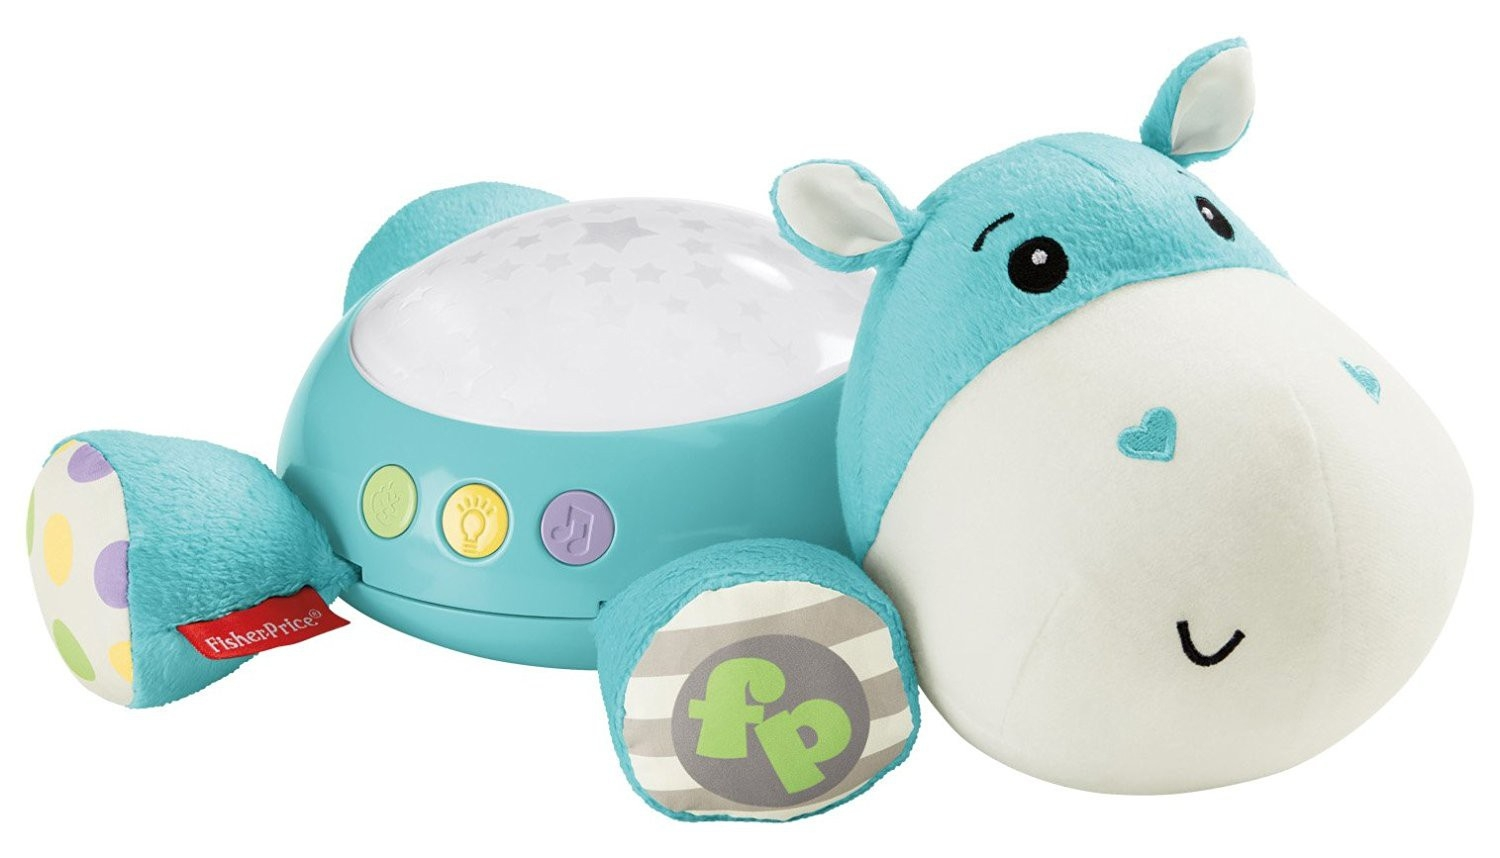 Fisher Price Snuggle Soother Projektor